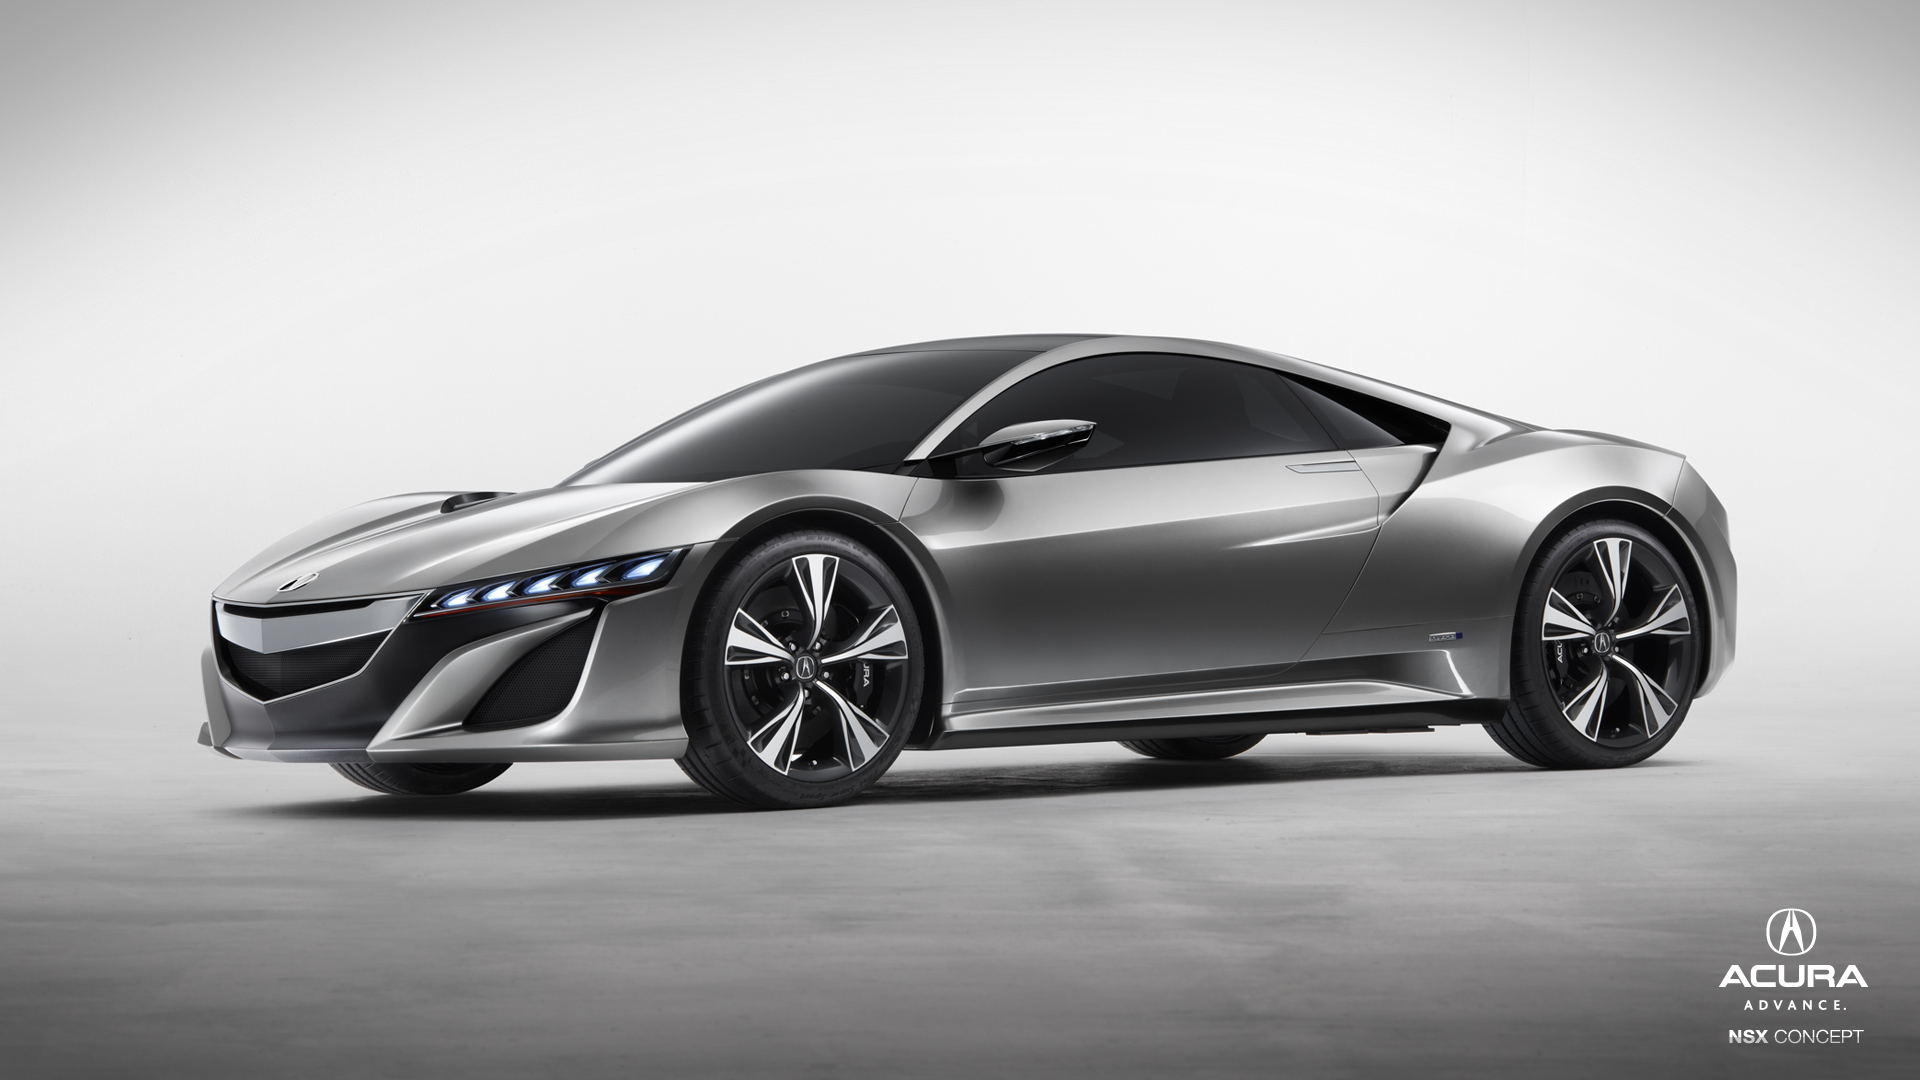 New Cars Wallpapers: 2014 Acura NSX Wallpapers